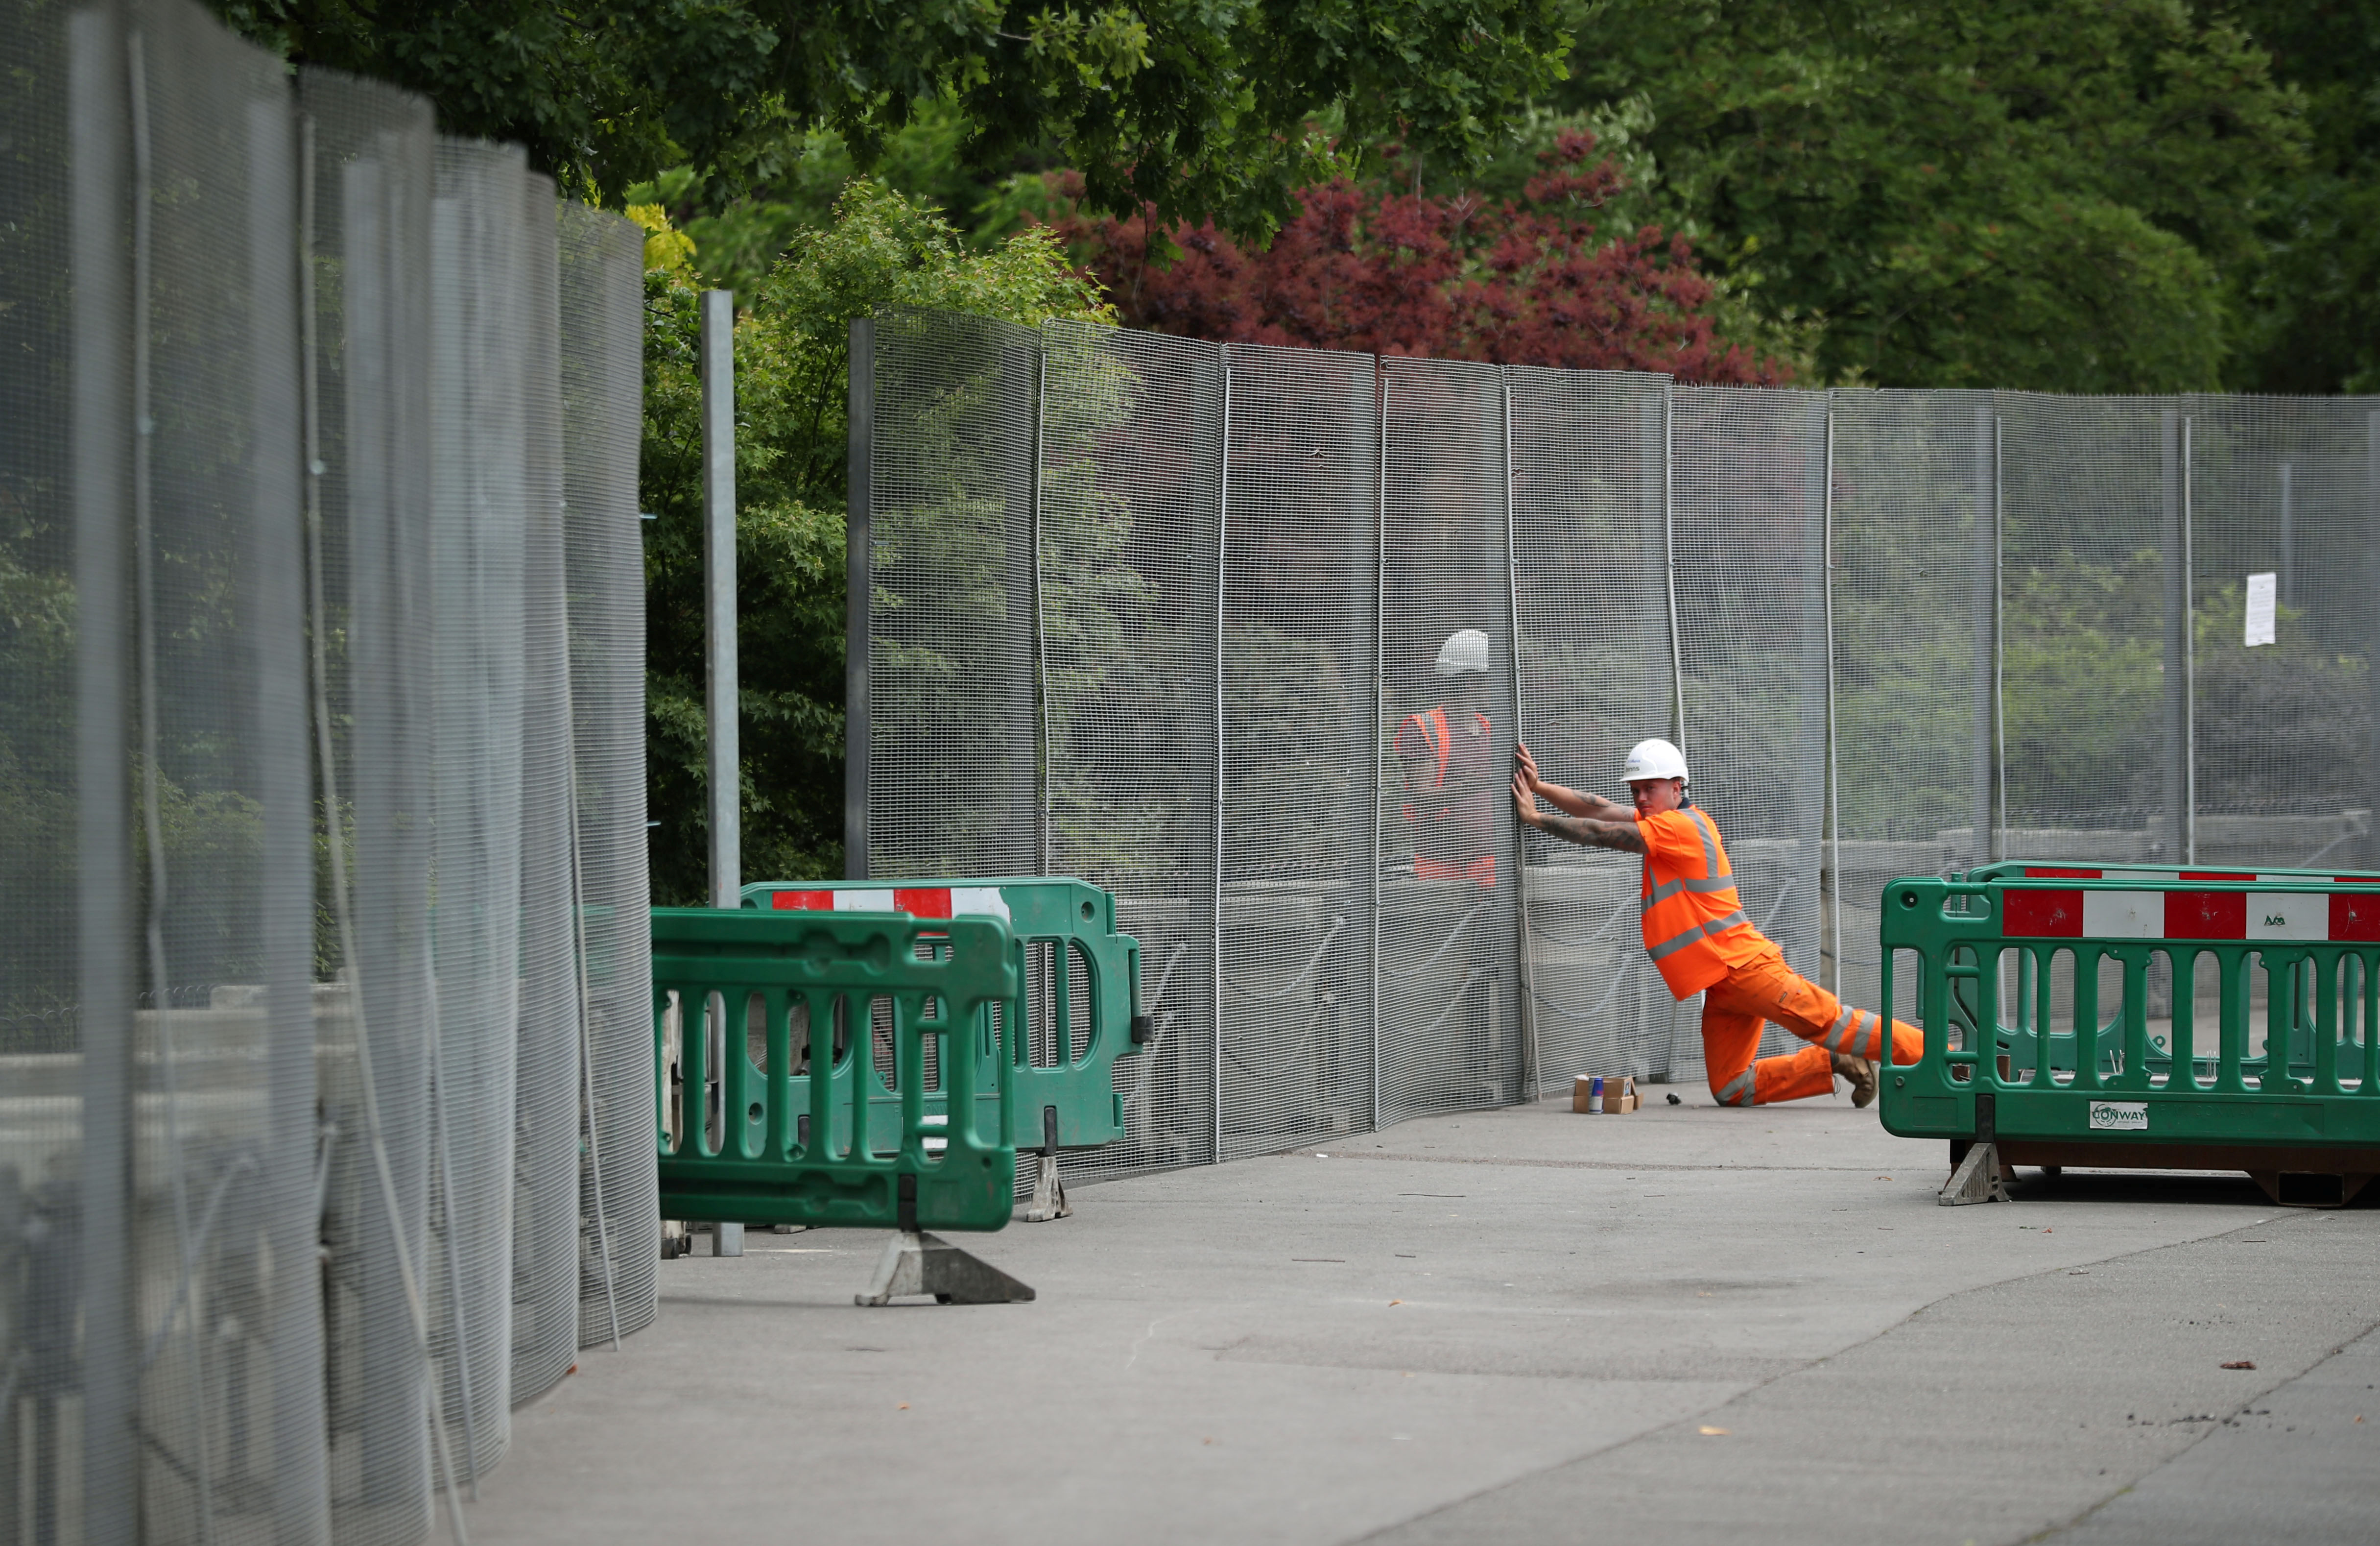 Workmen construct fences ahead of the U.S. presidential visit, around the U.S. ambassador's residence in Regent's Park in London, May 31, 2019.